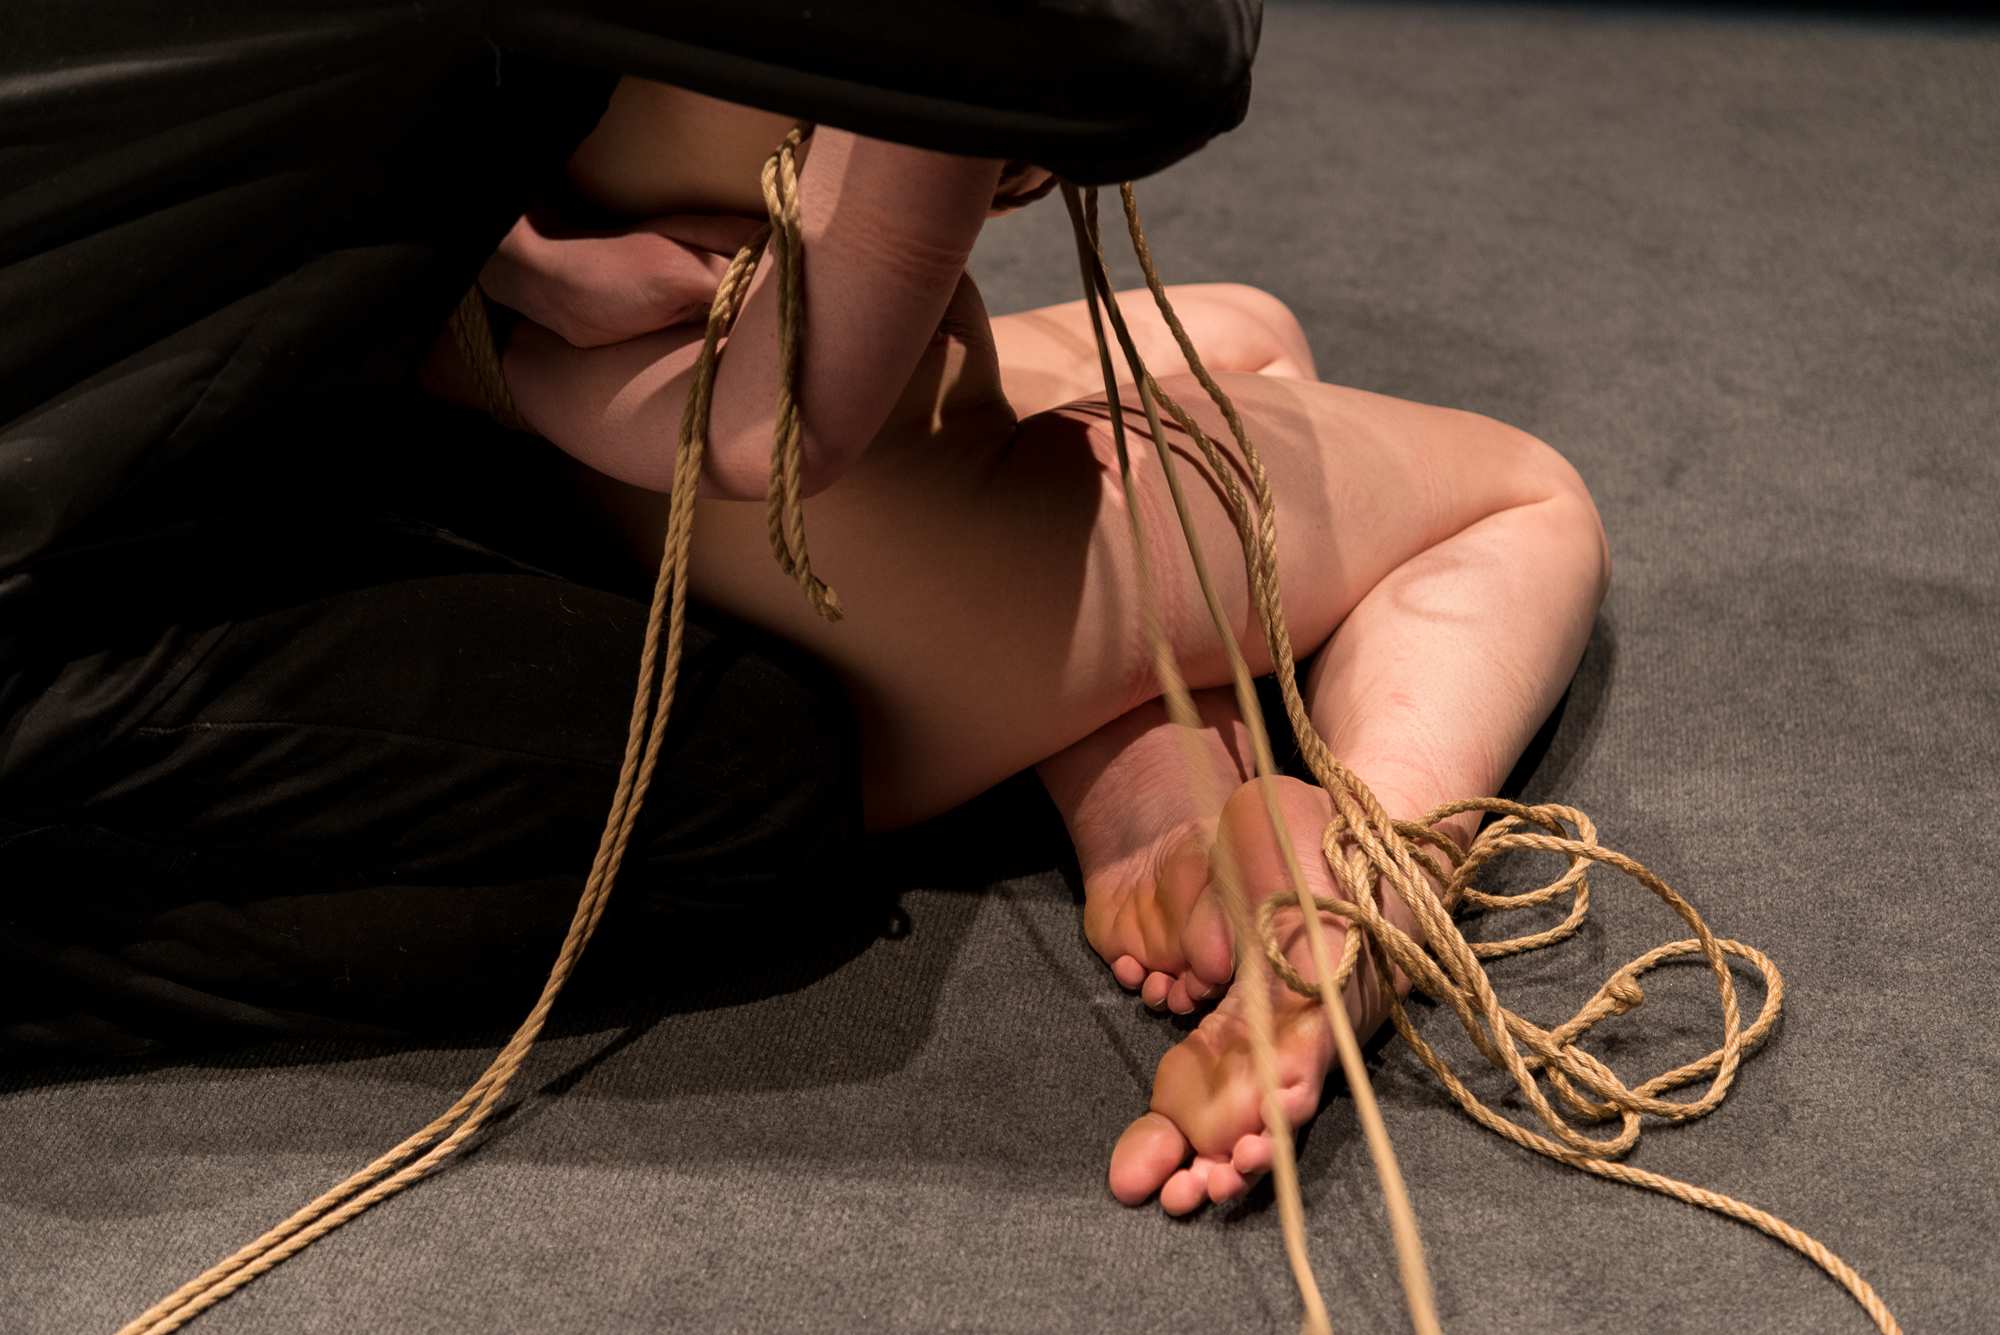 Rope details as Pedro unties Gestalta at the end of a shibari performance